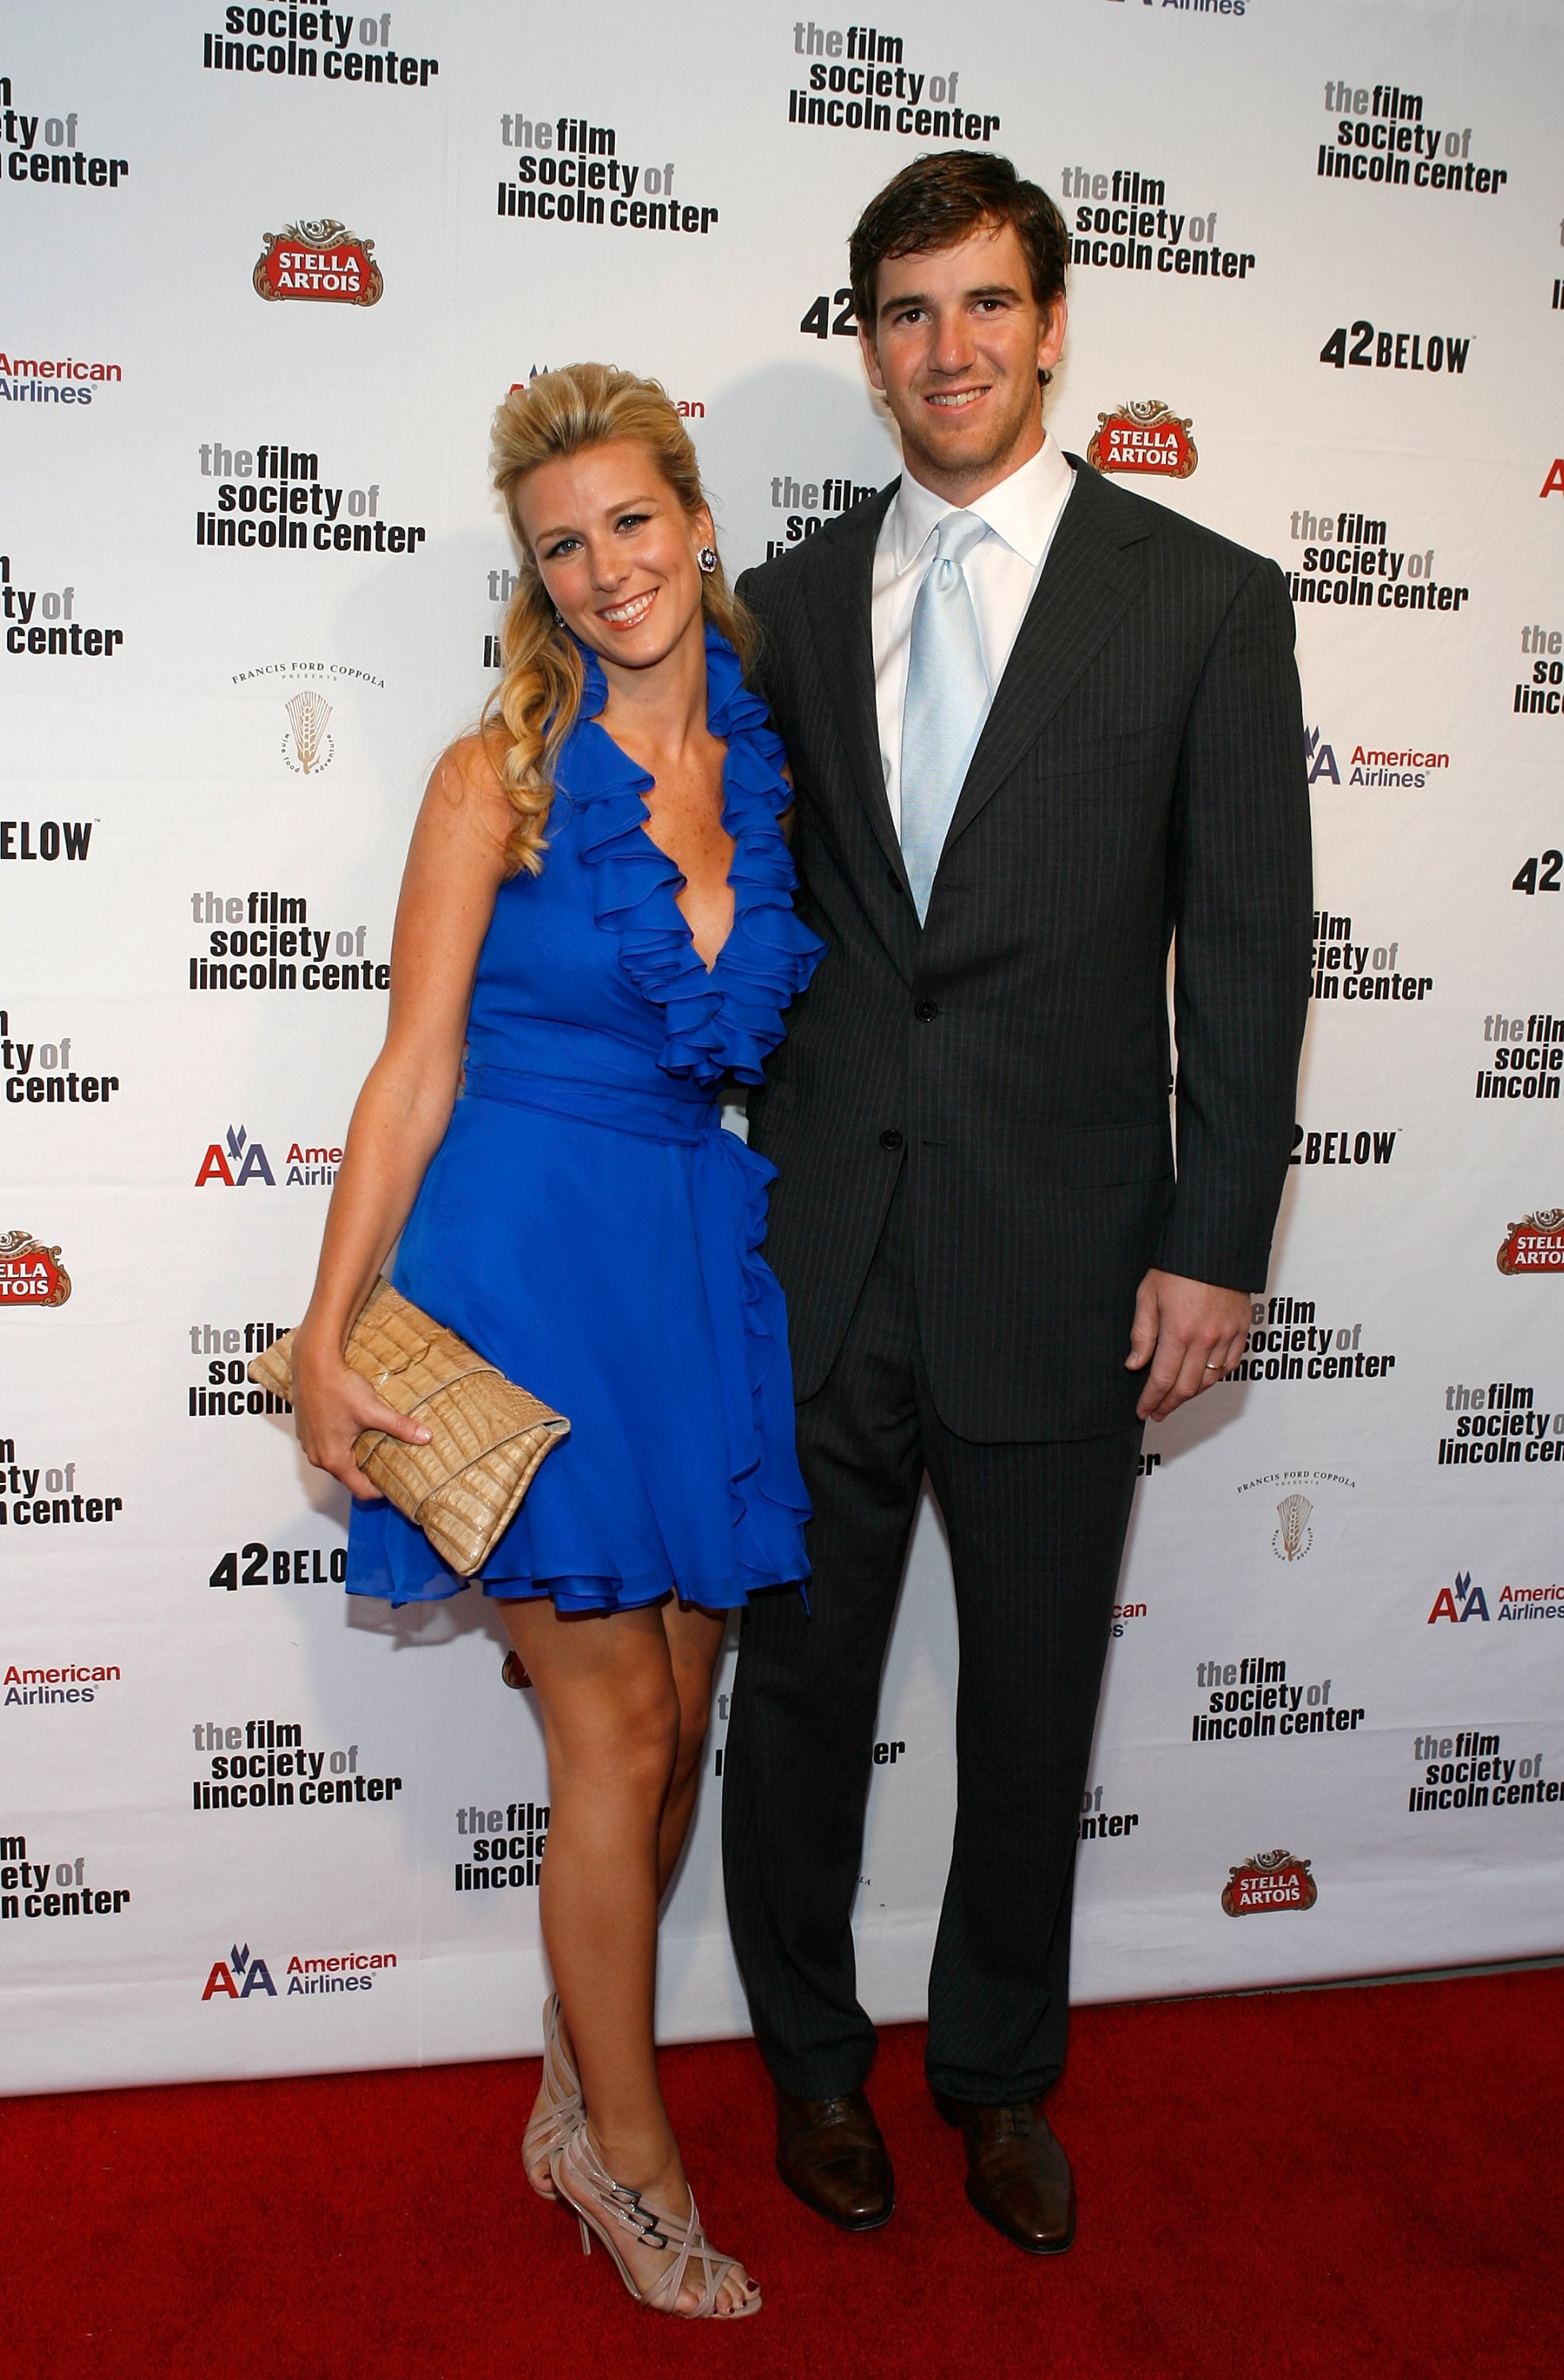 NEW YORK - APRIL 27: Abby McGrew and football player Eli Manning attend the 36th Film Society of Lincoln Center's Gala Tribute at Alice Tully Hall on April 27, 2009 in New York City.  (Photo by Mark Von Holden/Getty Images)